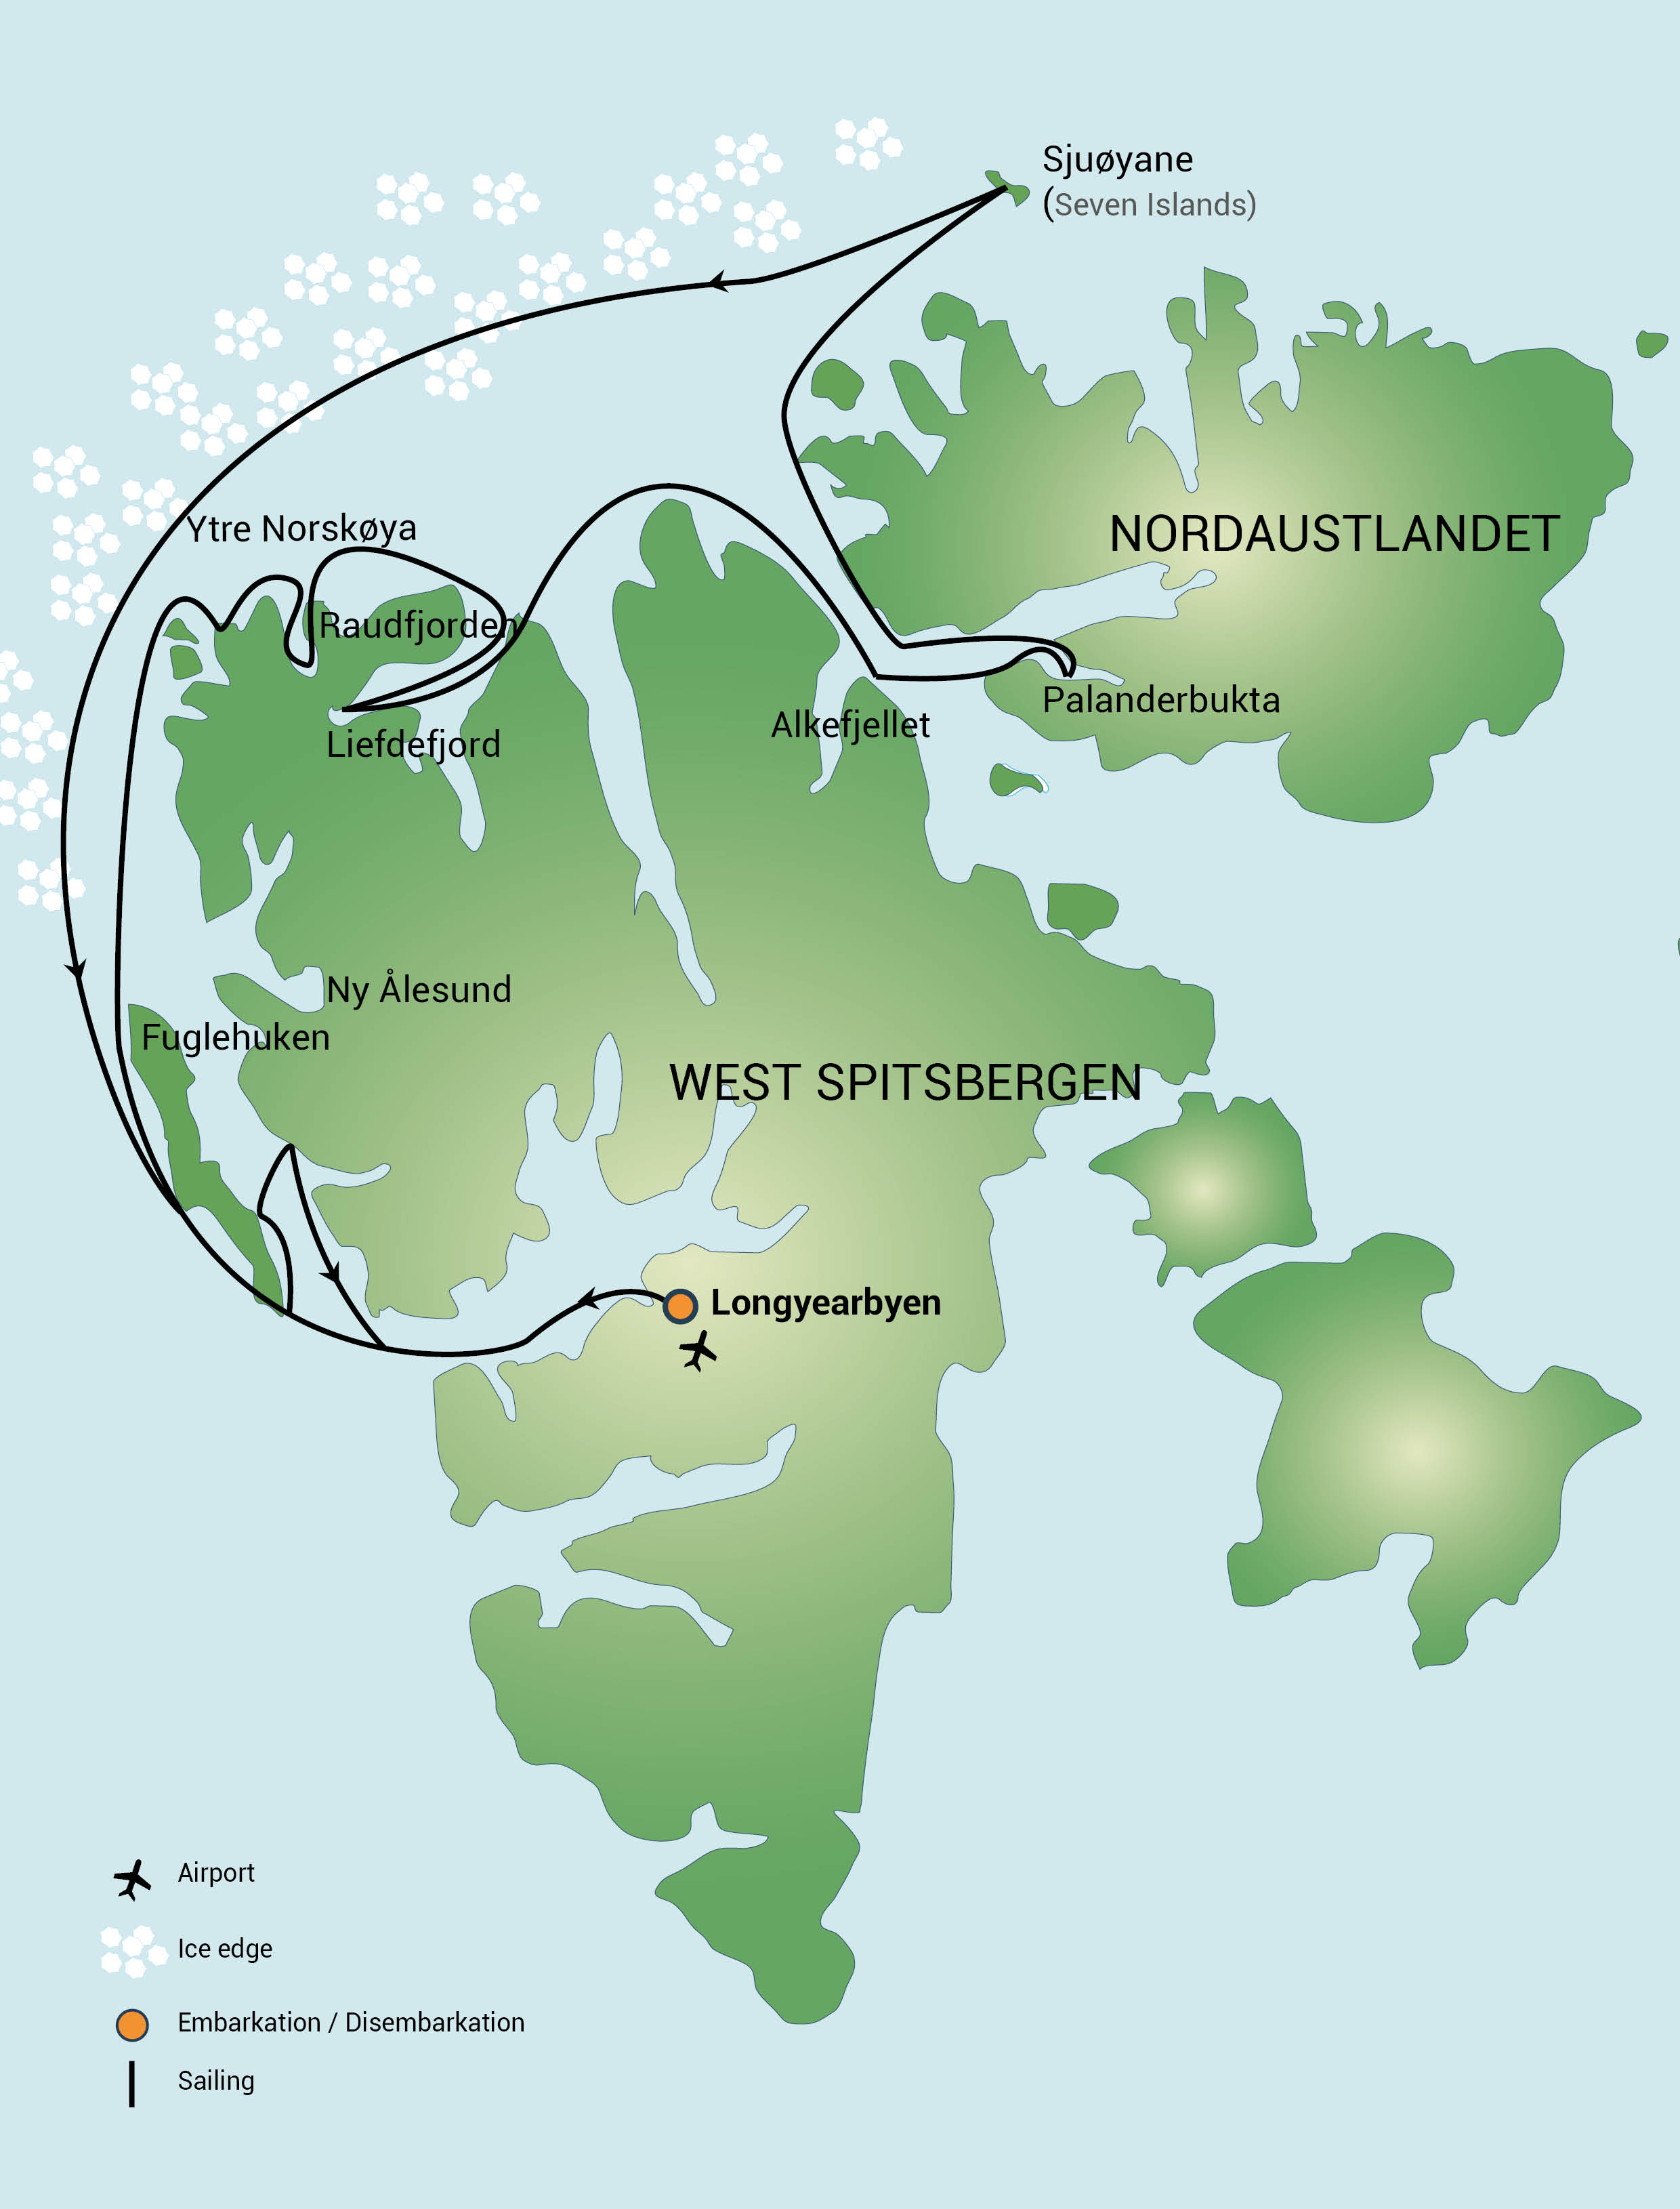 Map for North Spitsbergen - Polar Bear Special (Plancius)